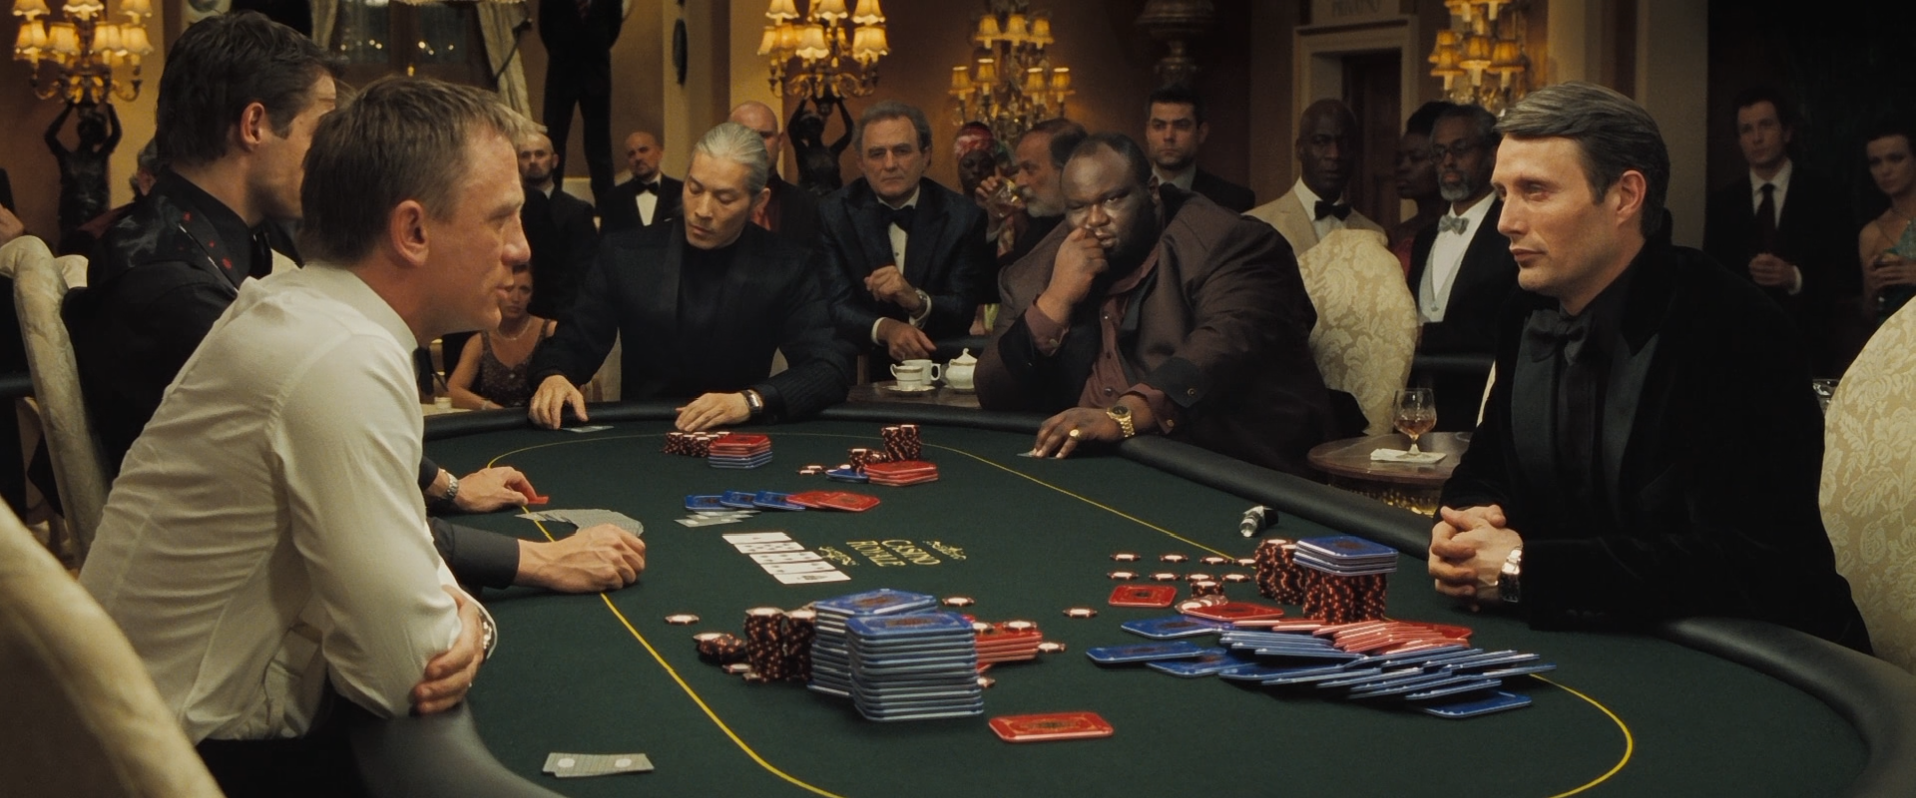 Get Inspired To Gamble By Watching Gambling Movies